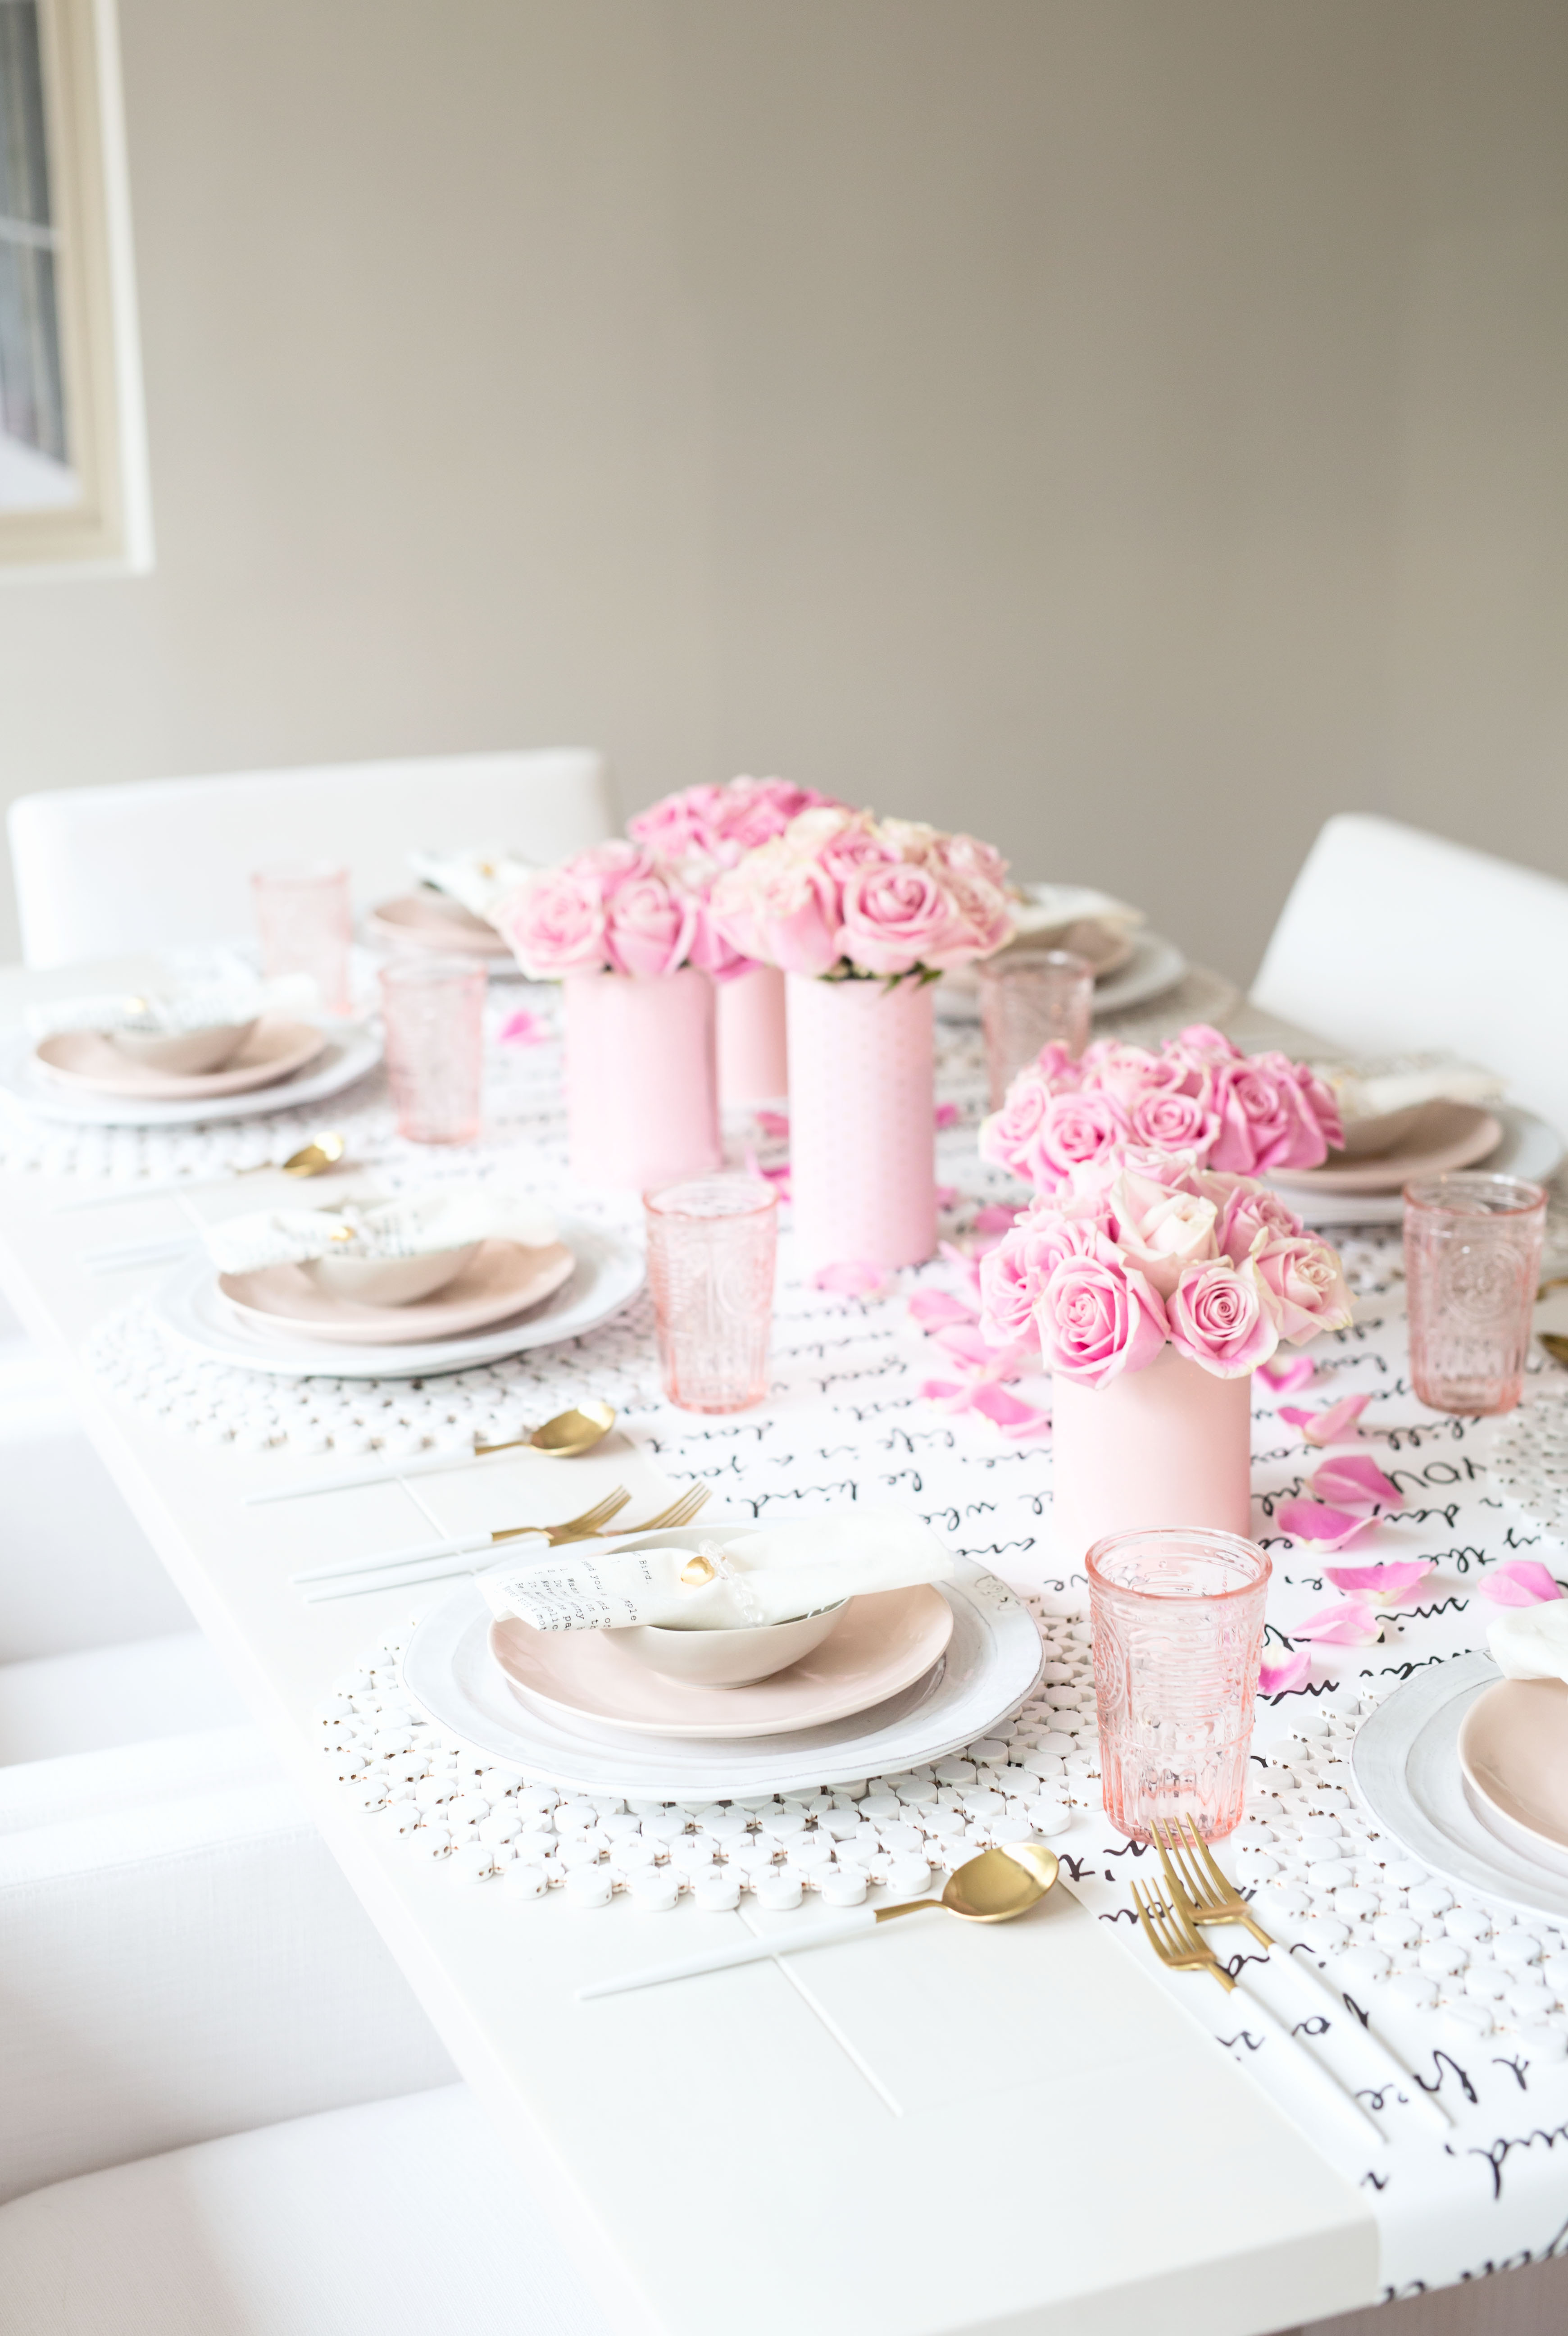 Holiday Hosting at Home #7: Need Some Valentine's Day Inspiration?